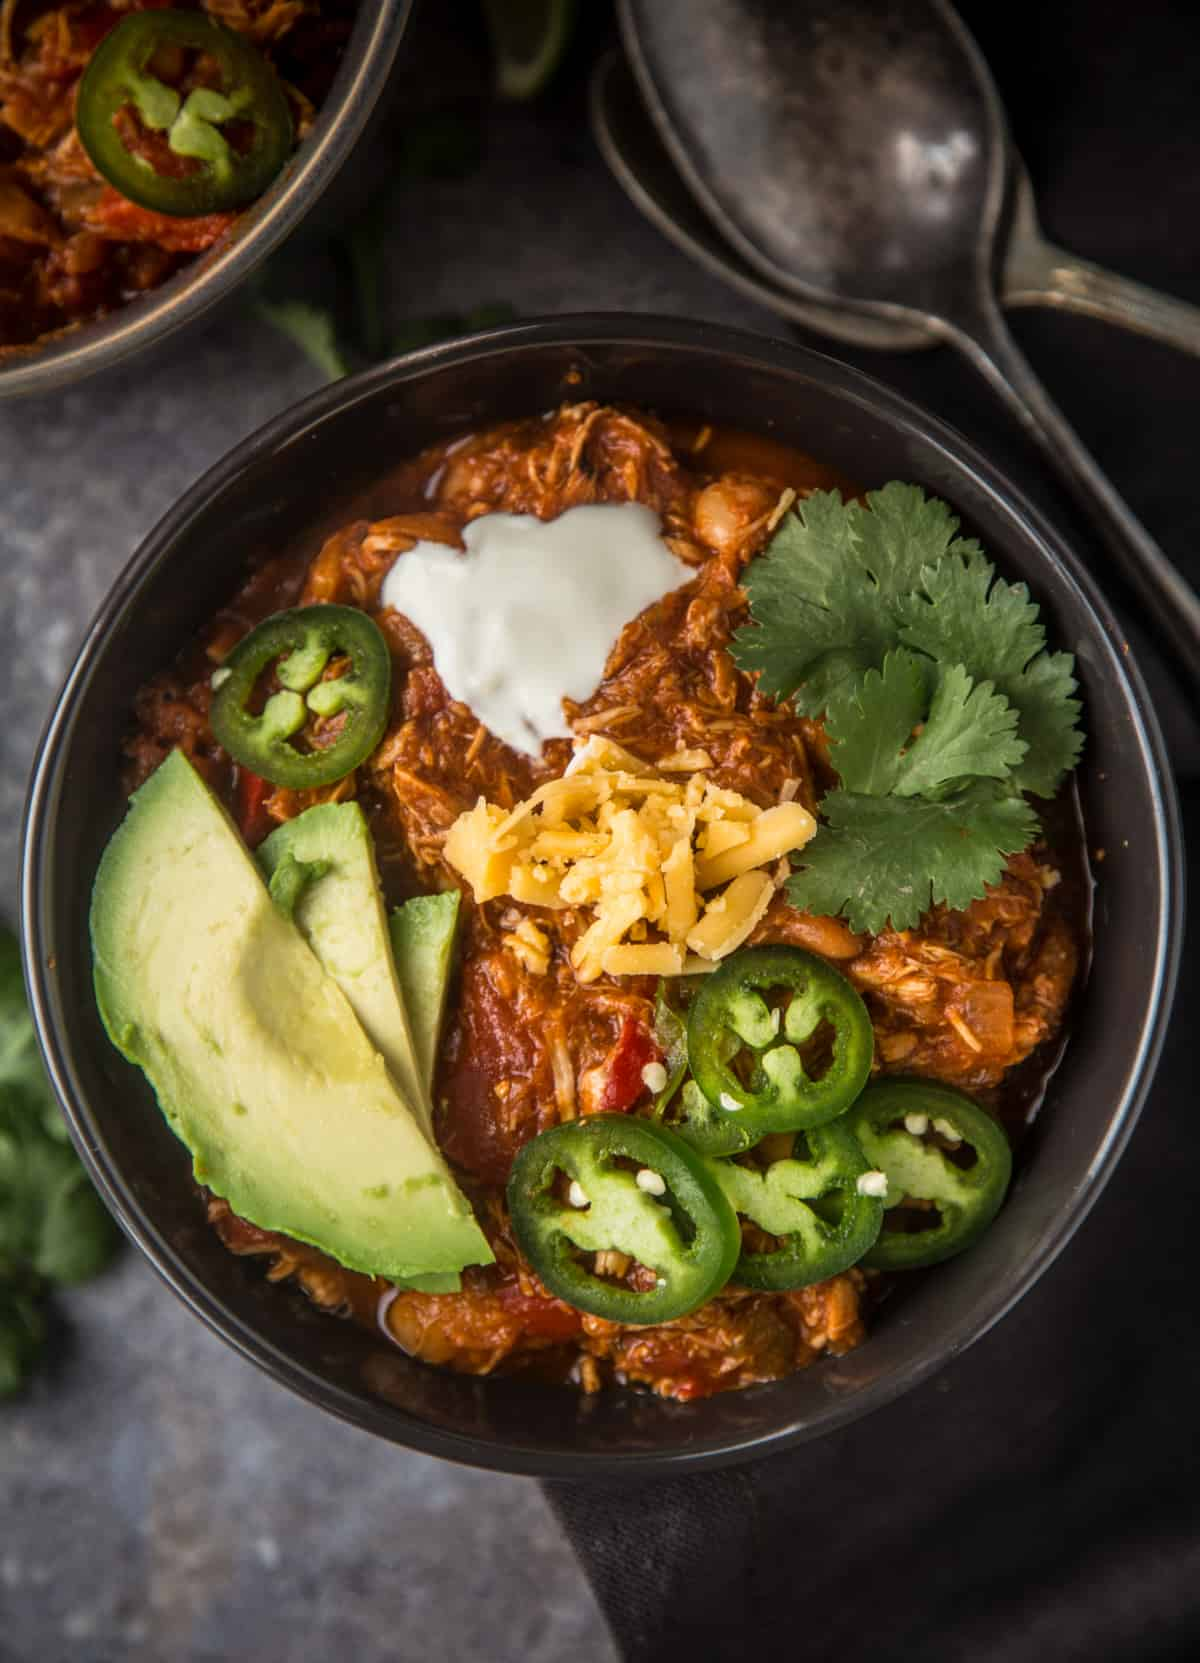 A bowl of easy smoked chicken chili topped with avocado, cheese, and jalapeño